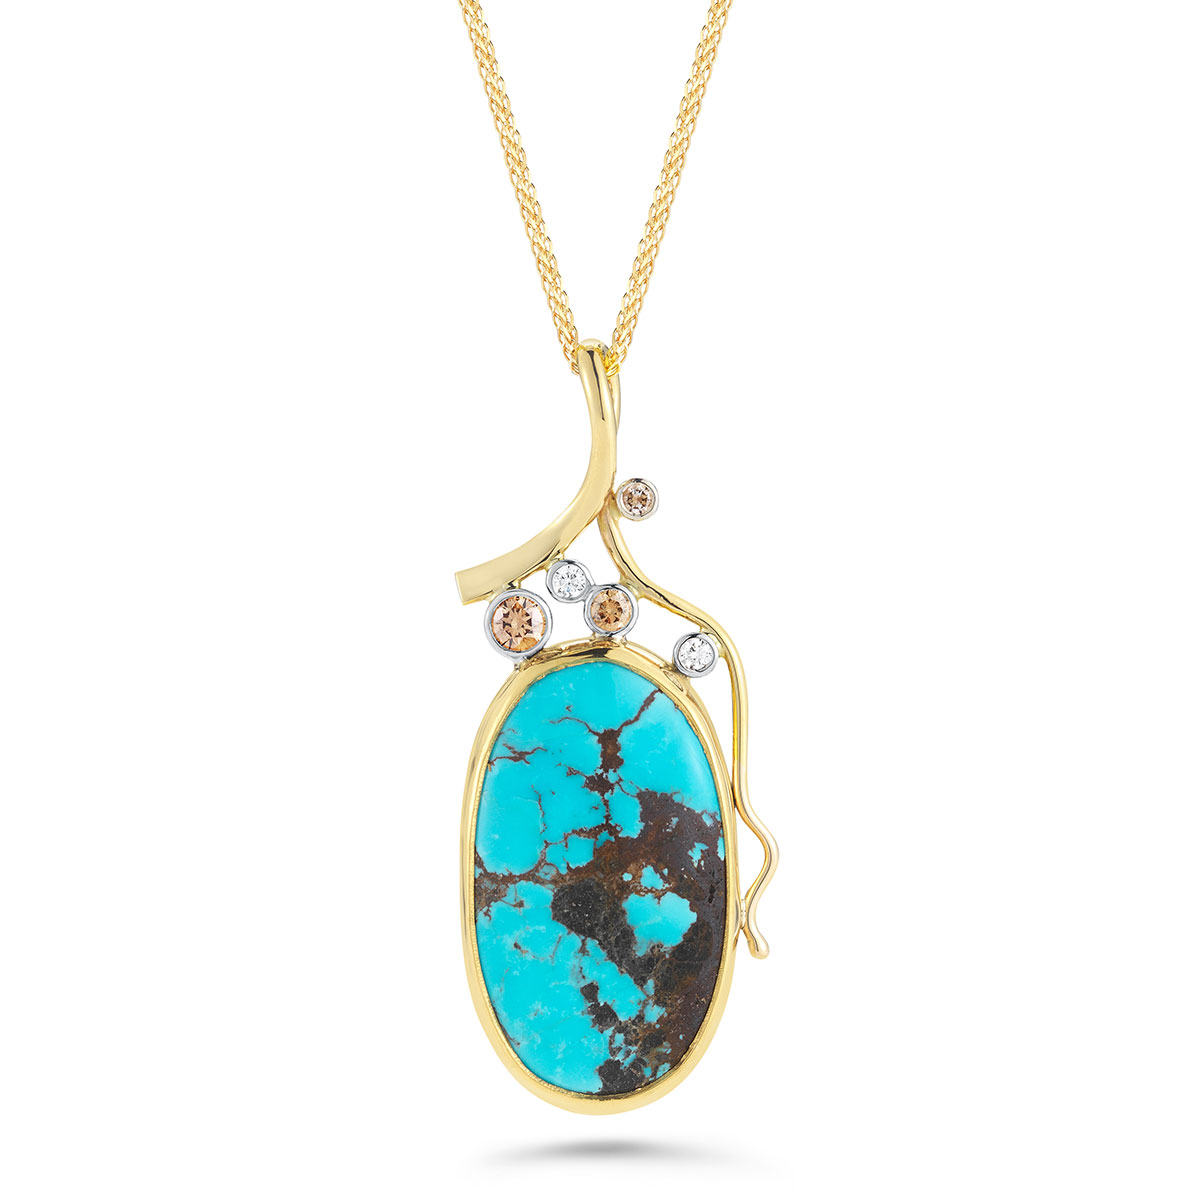 IND1058 Turquoise and Champagne Diamond Pendant